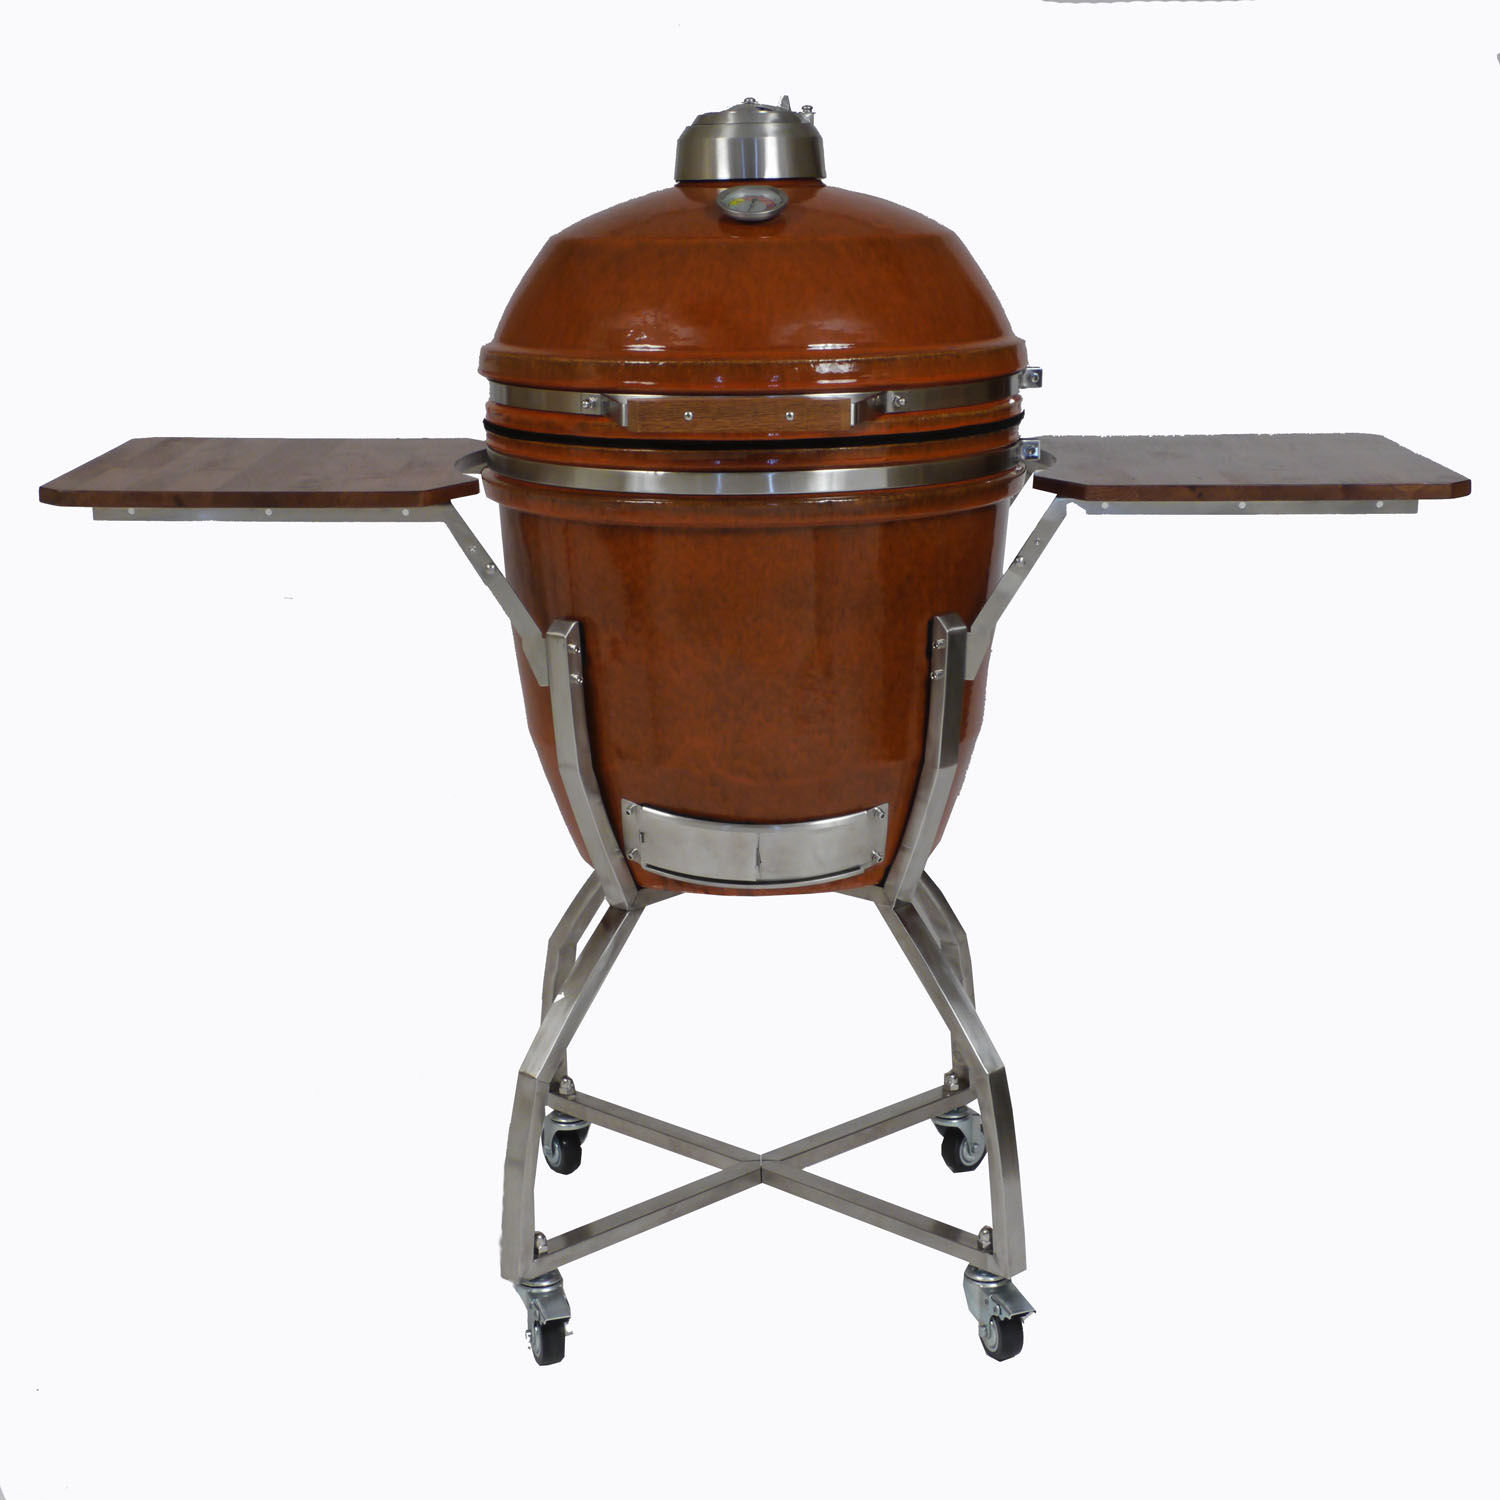 In ceramic kamado grill rust with stainless steel